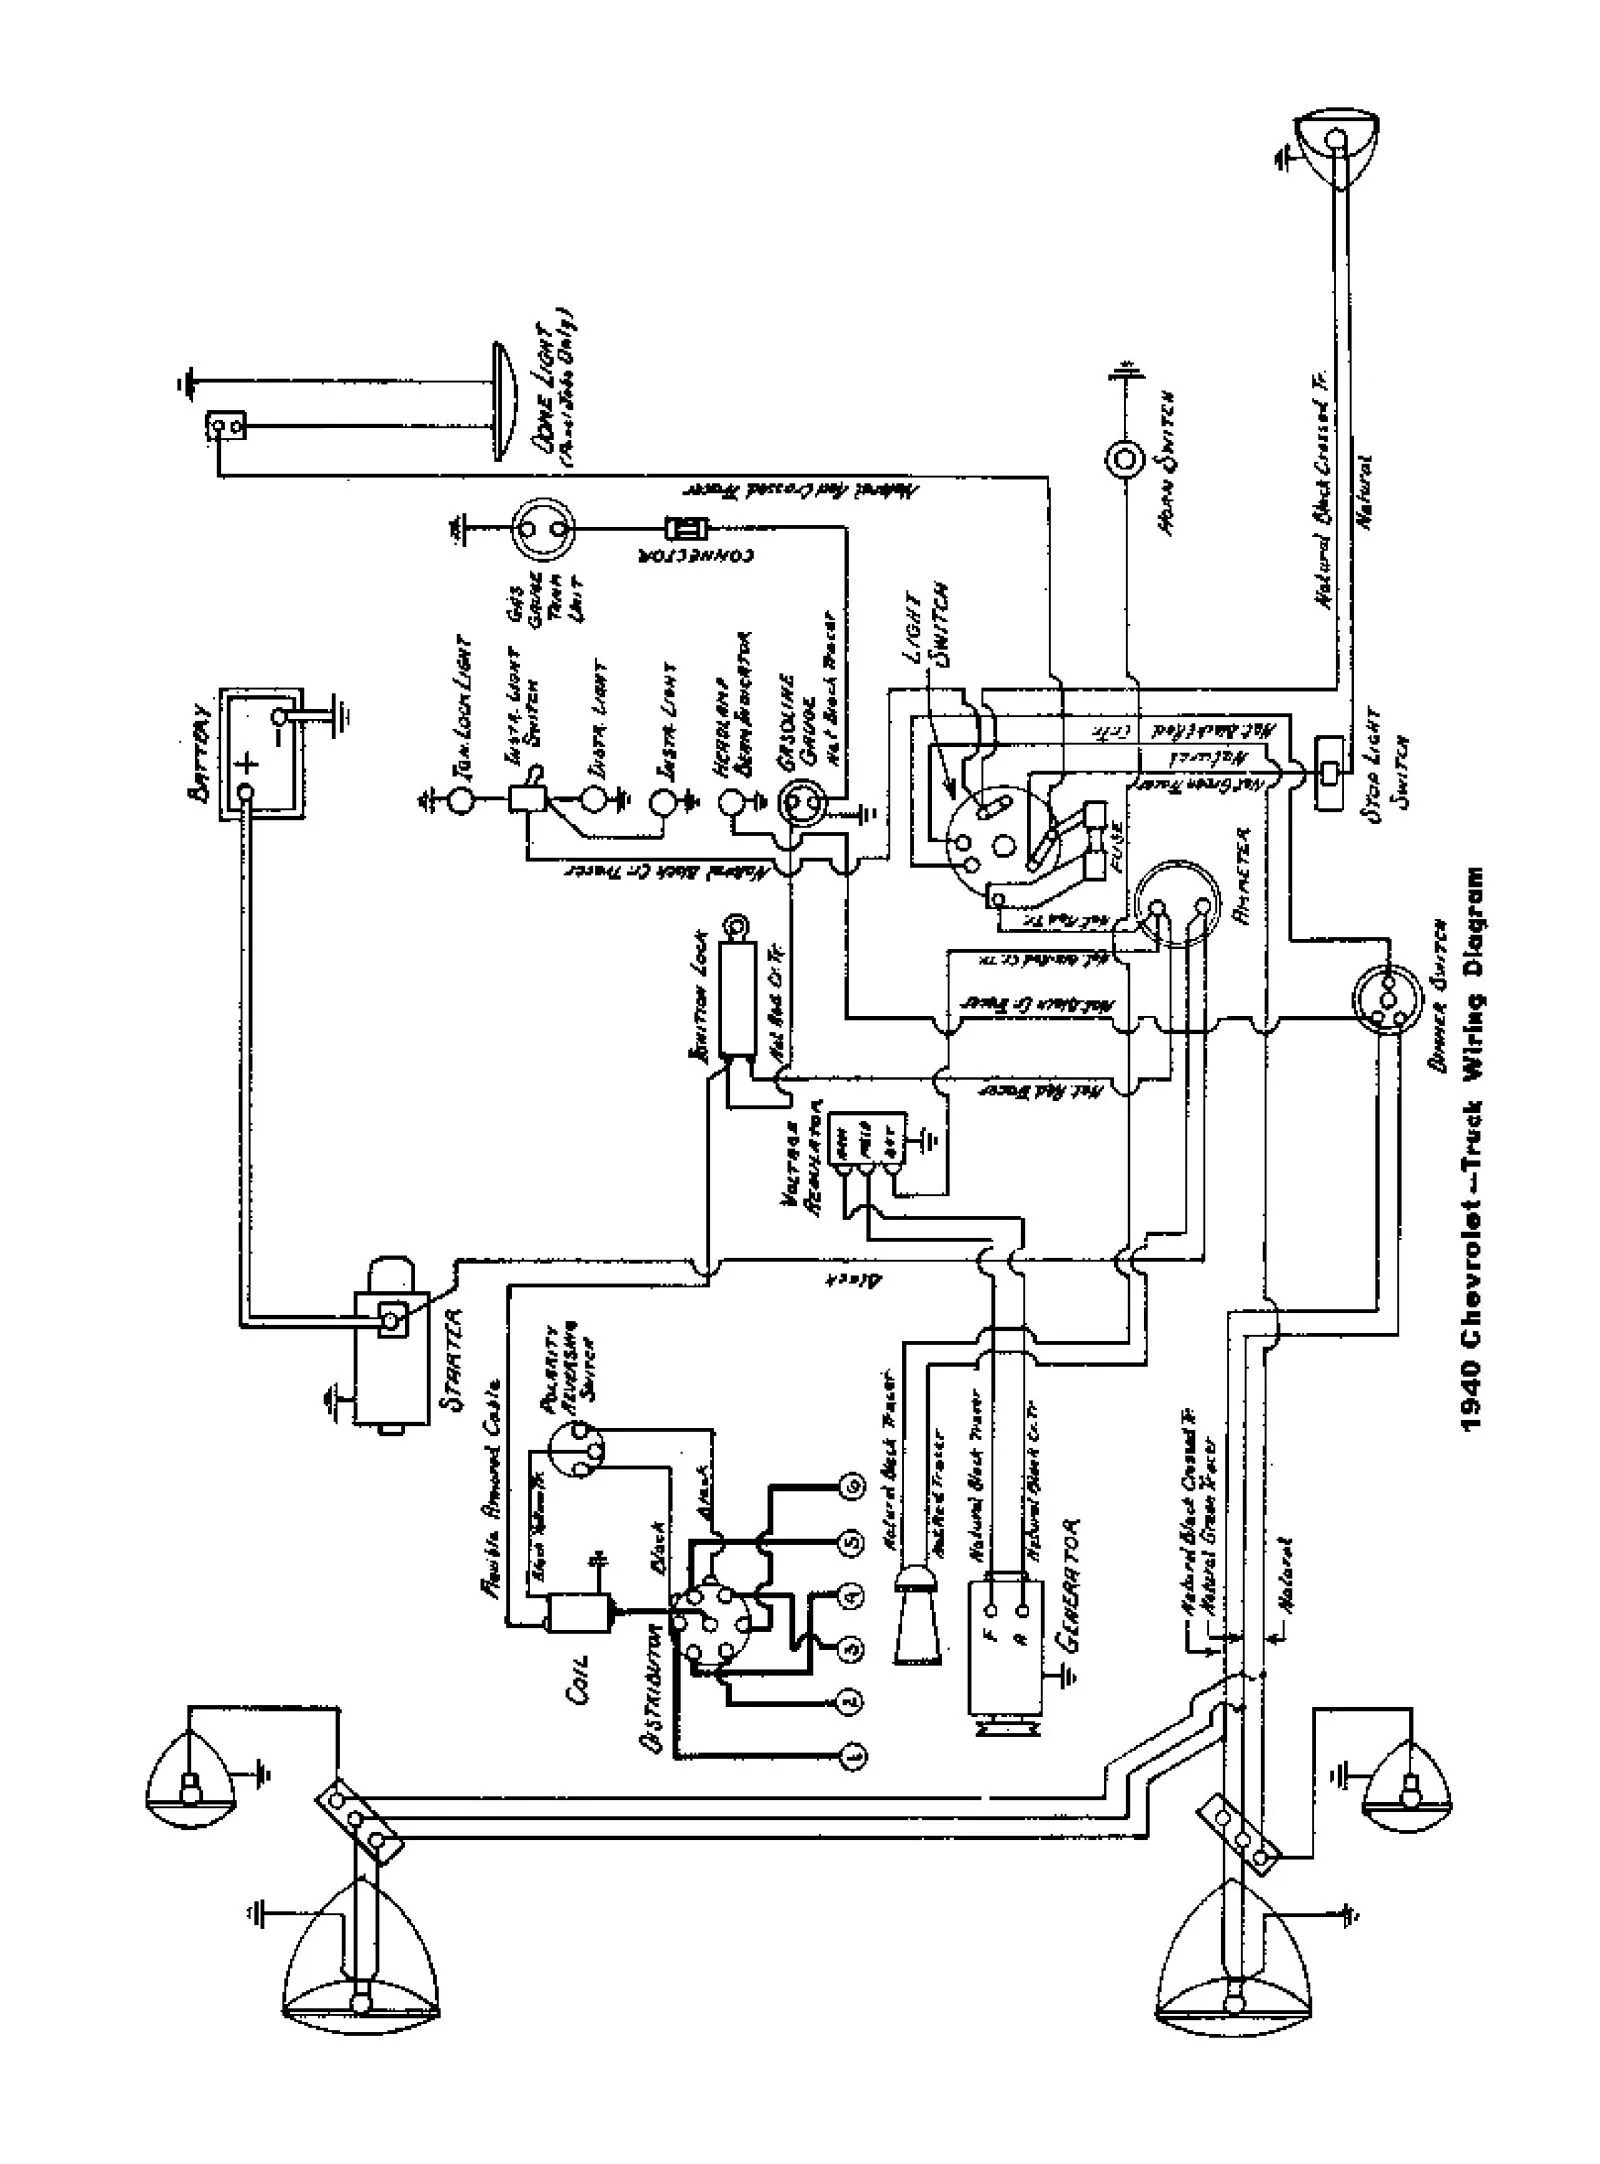 hight resolution of 1951 chevy truck wiring diagram wiring diagram database chevy truck diagram 1954 chevy truck wiring harness 1951 chevy truck